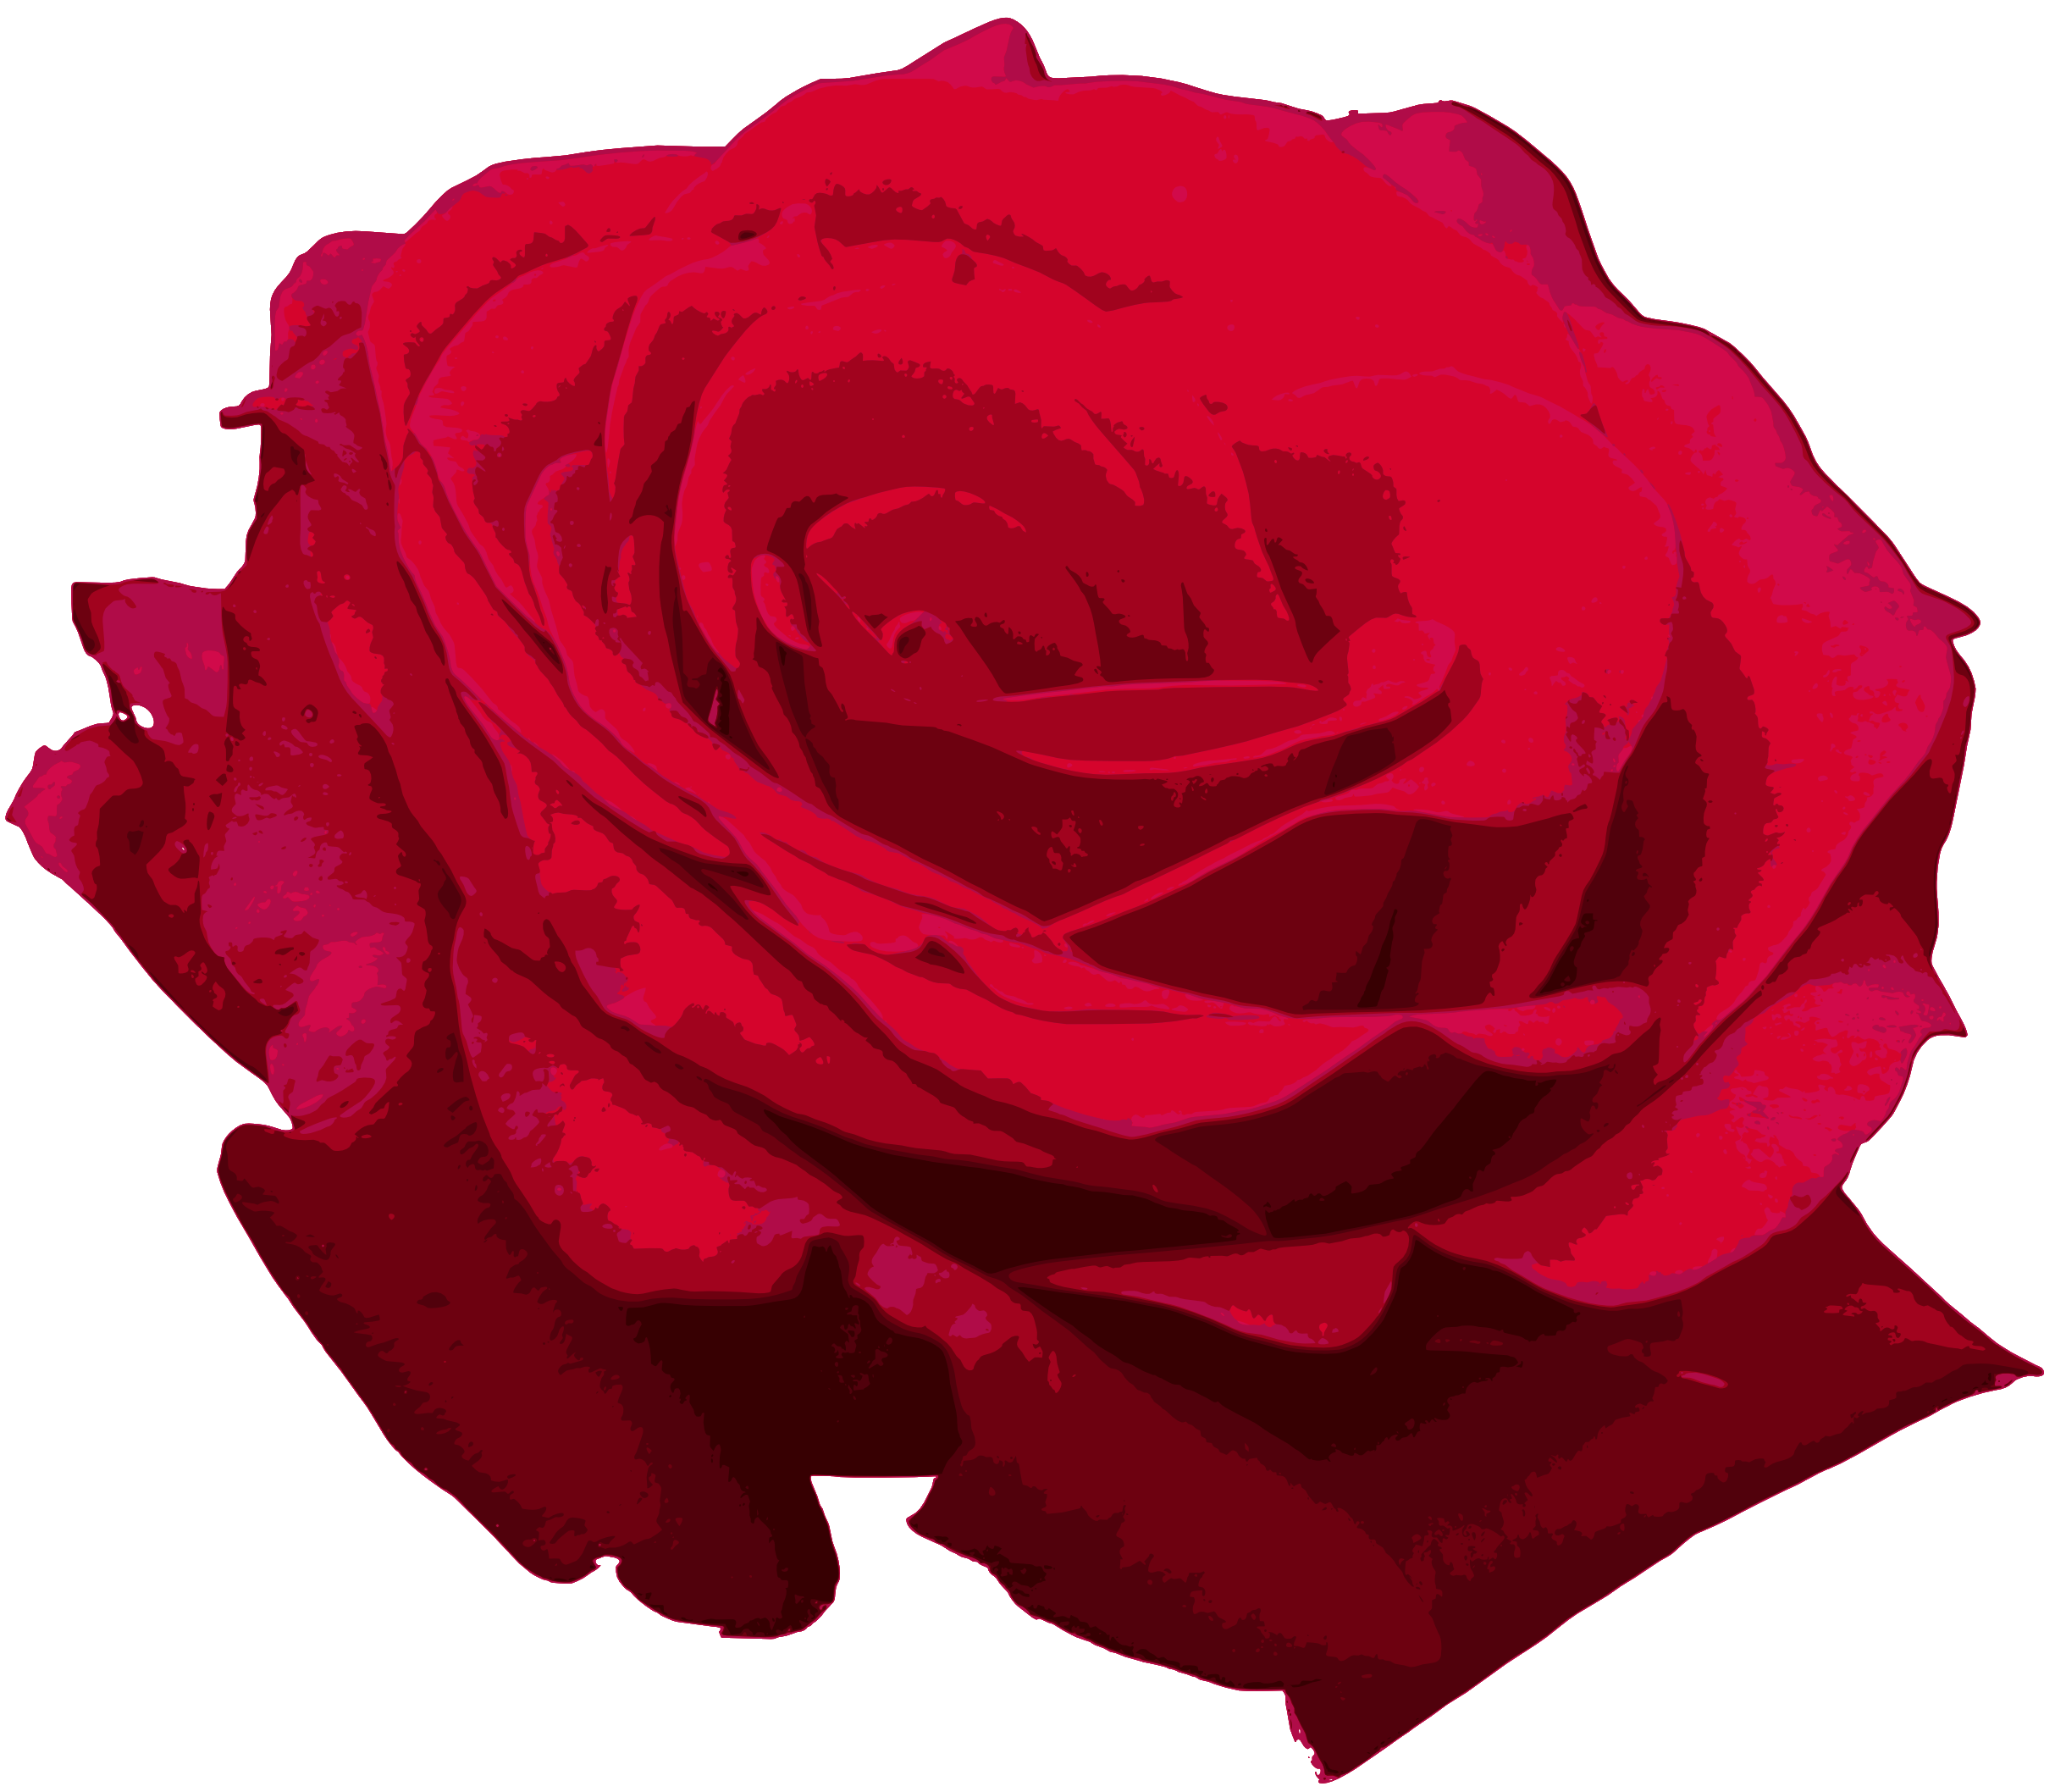 Red roses png. Rose image transparent onlygfx